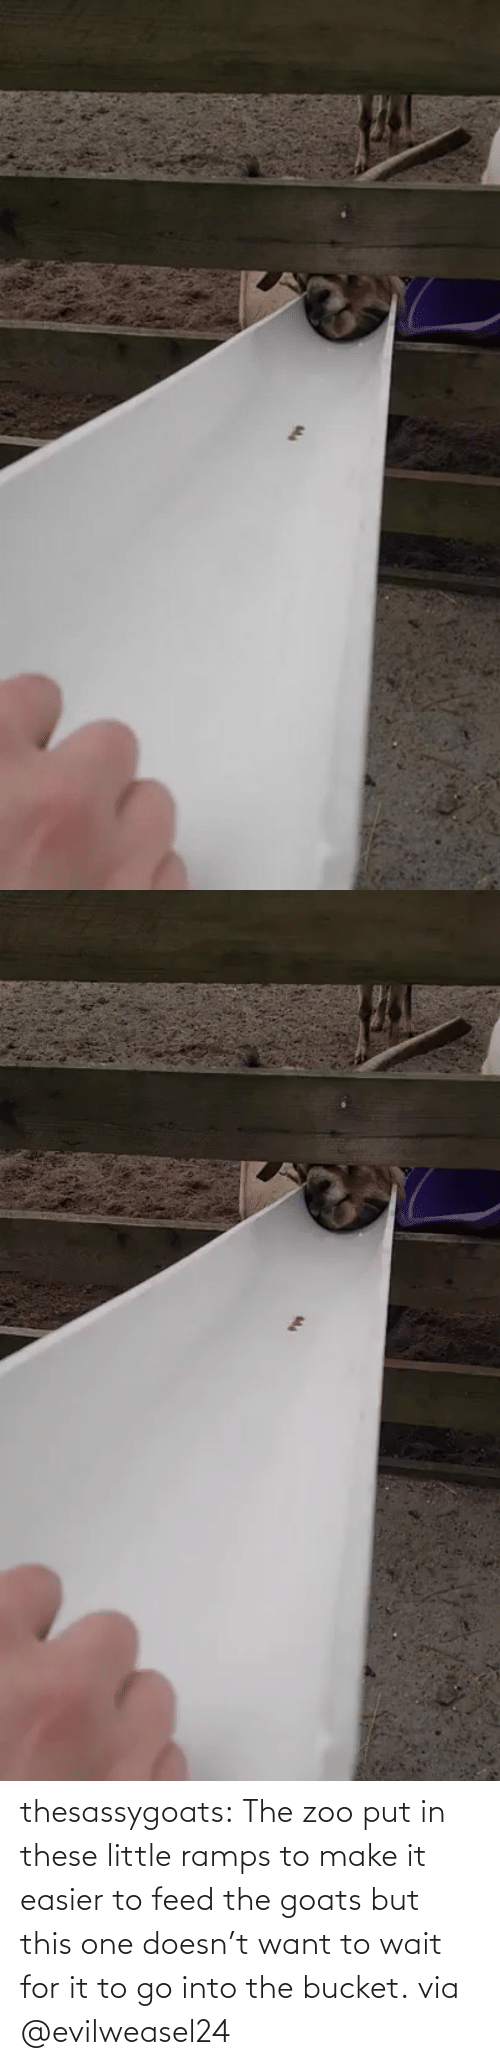 want: thesassygoats: The zoo put in these little ramps to make it easier to feed the goats but this one doesn't want to wait for it to go into the bucket. via @evilweasel24